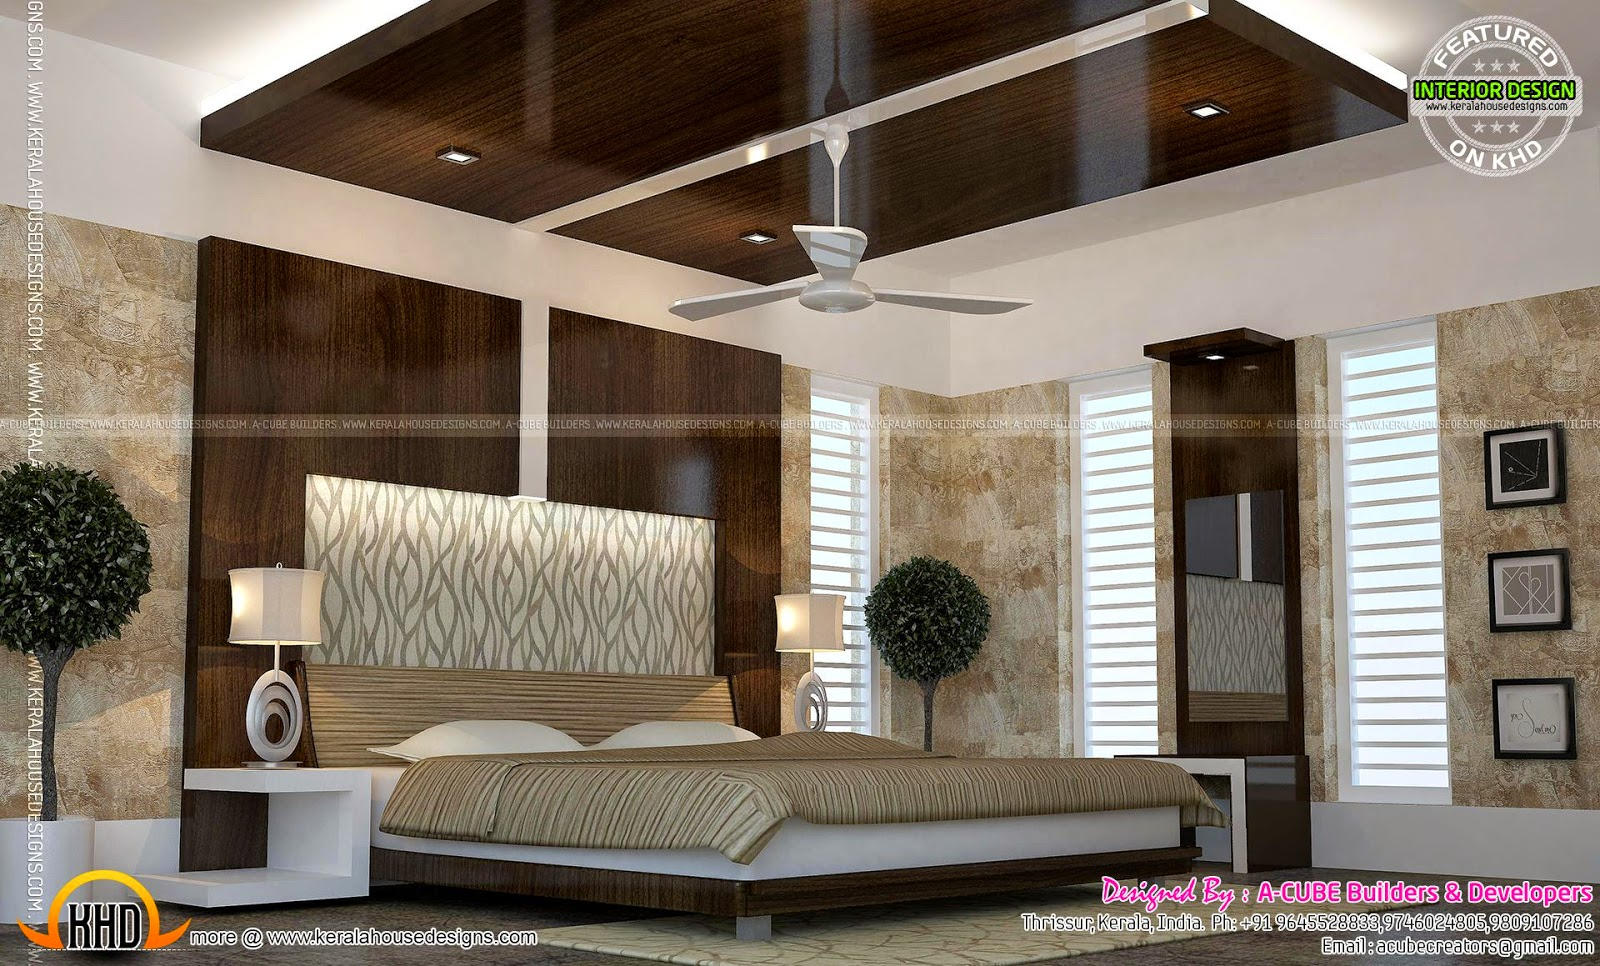 Kerala interior design ideas kerala home design and - Interior design for bedroom in india ...